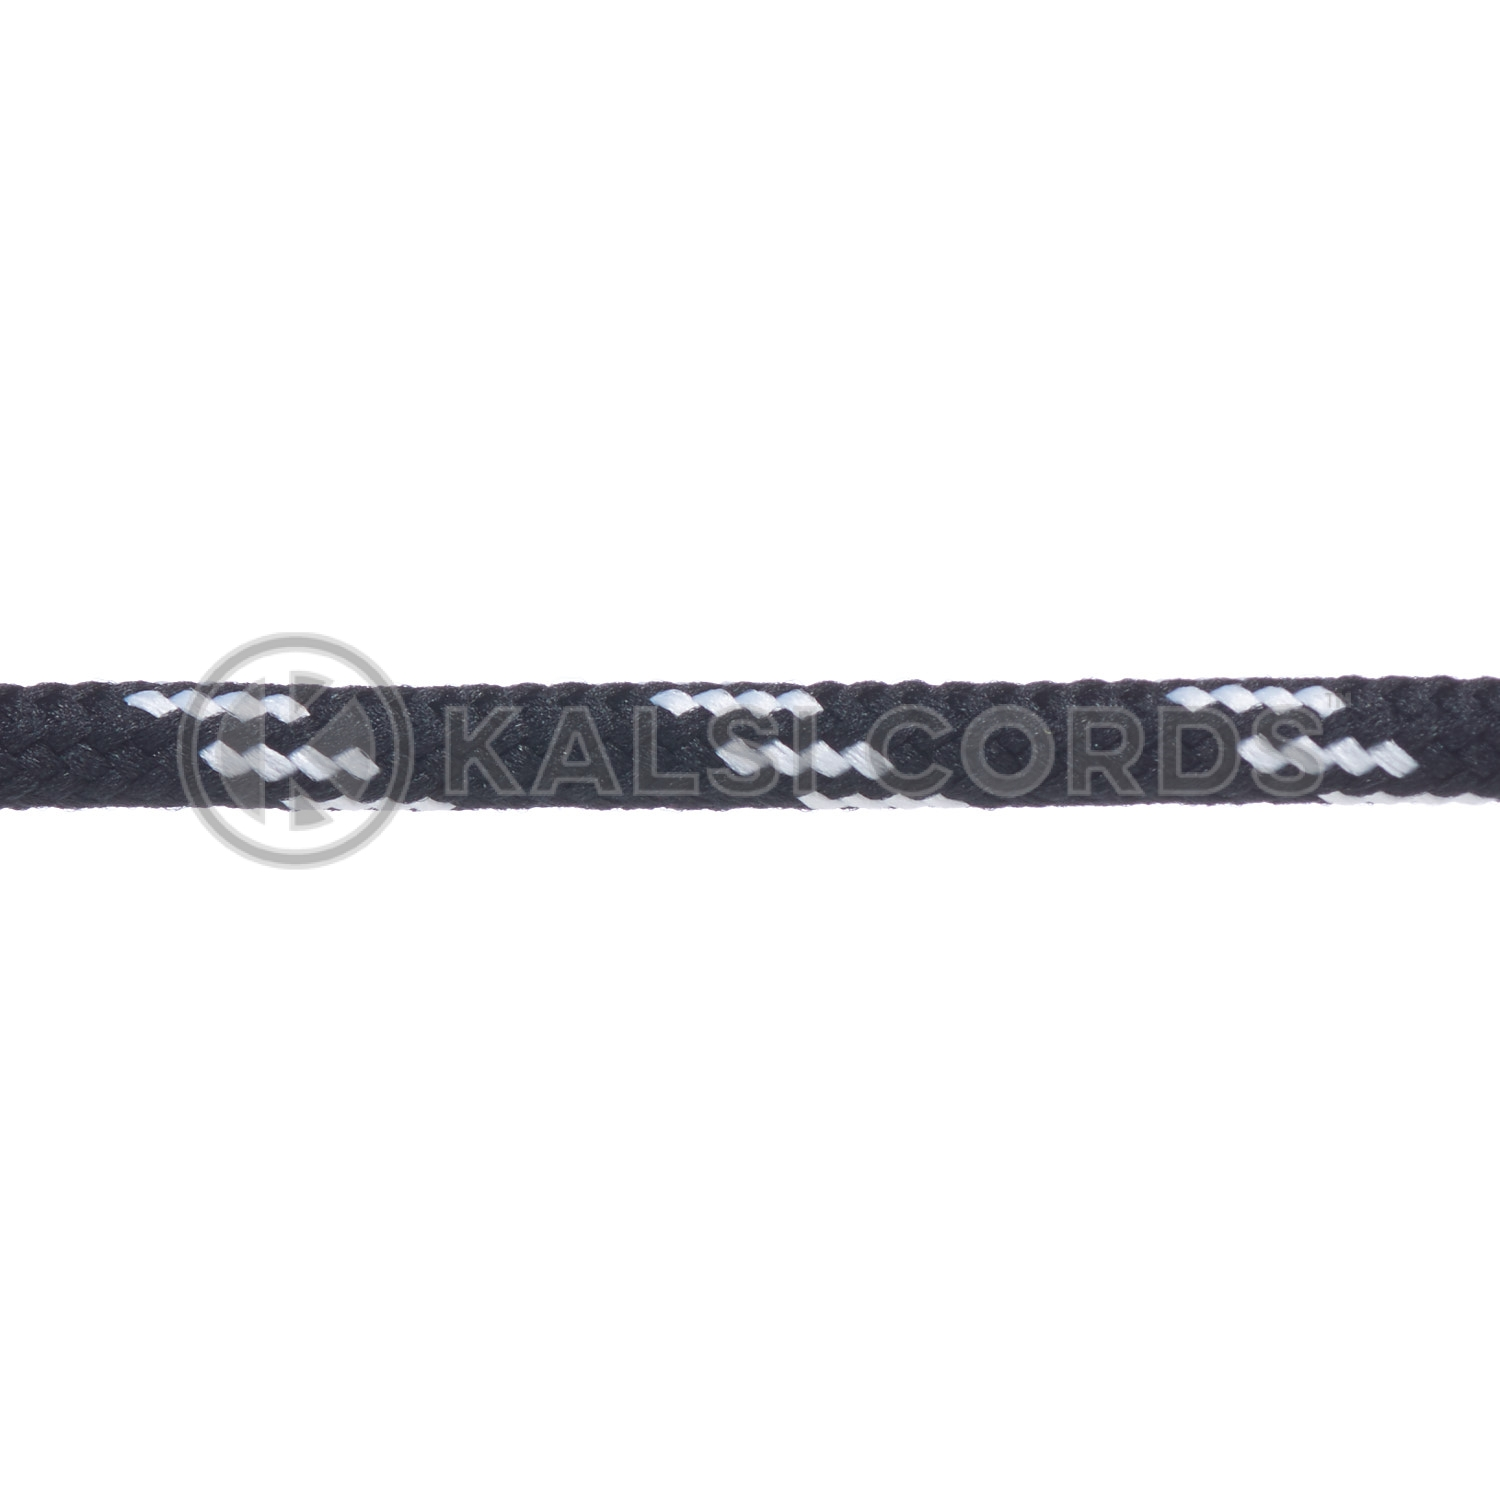 T621 5mm Round Cord Shoe Laces Black White 4 Fleck Kids Trainers Adults Hiking Walking Boots Kalsi Cords